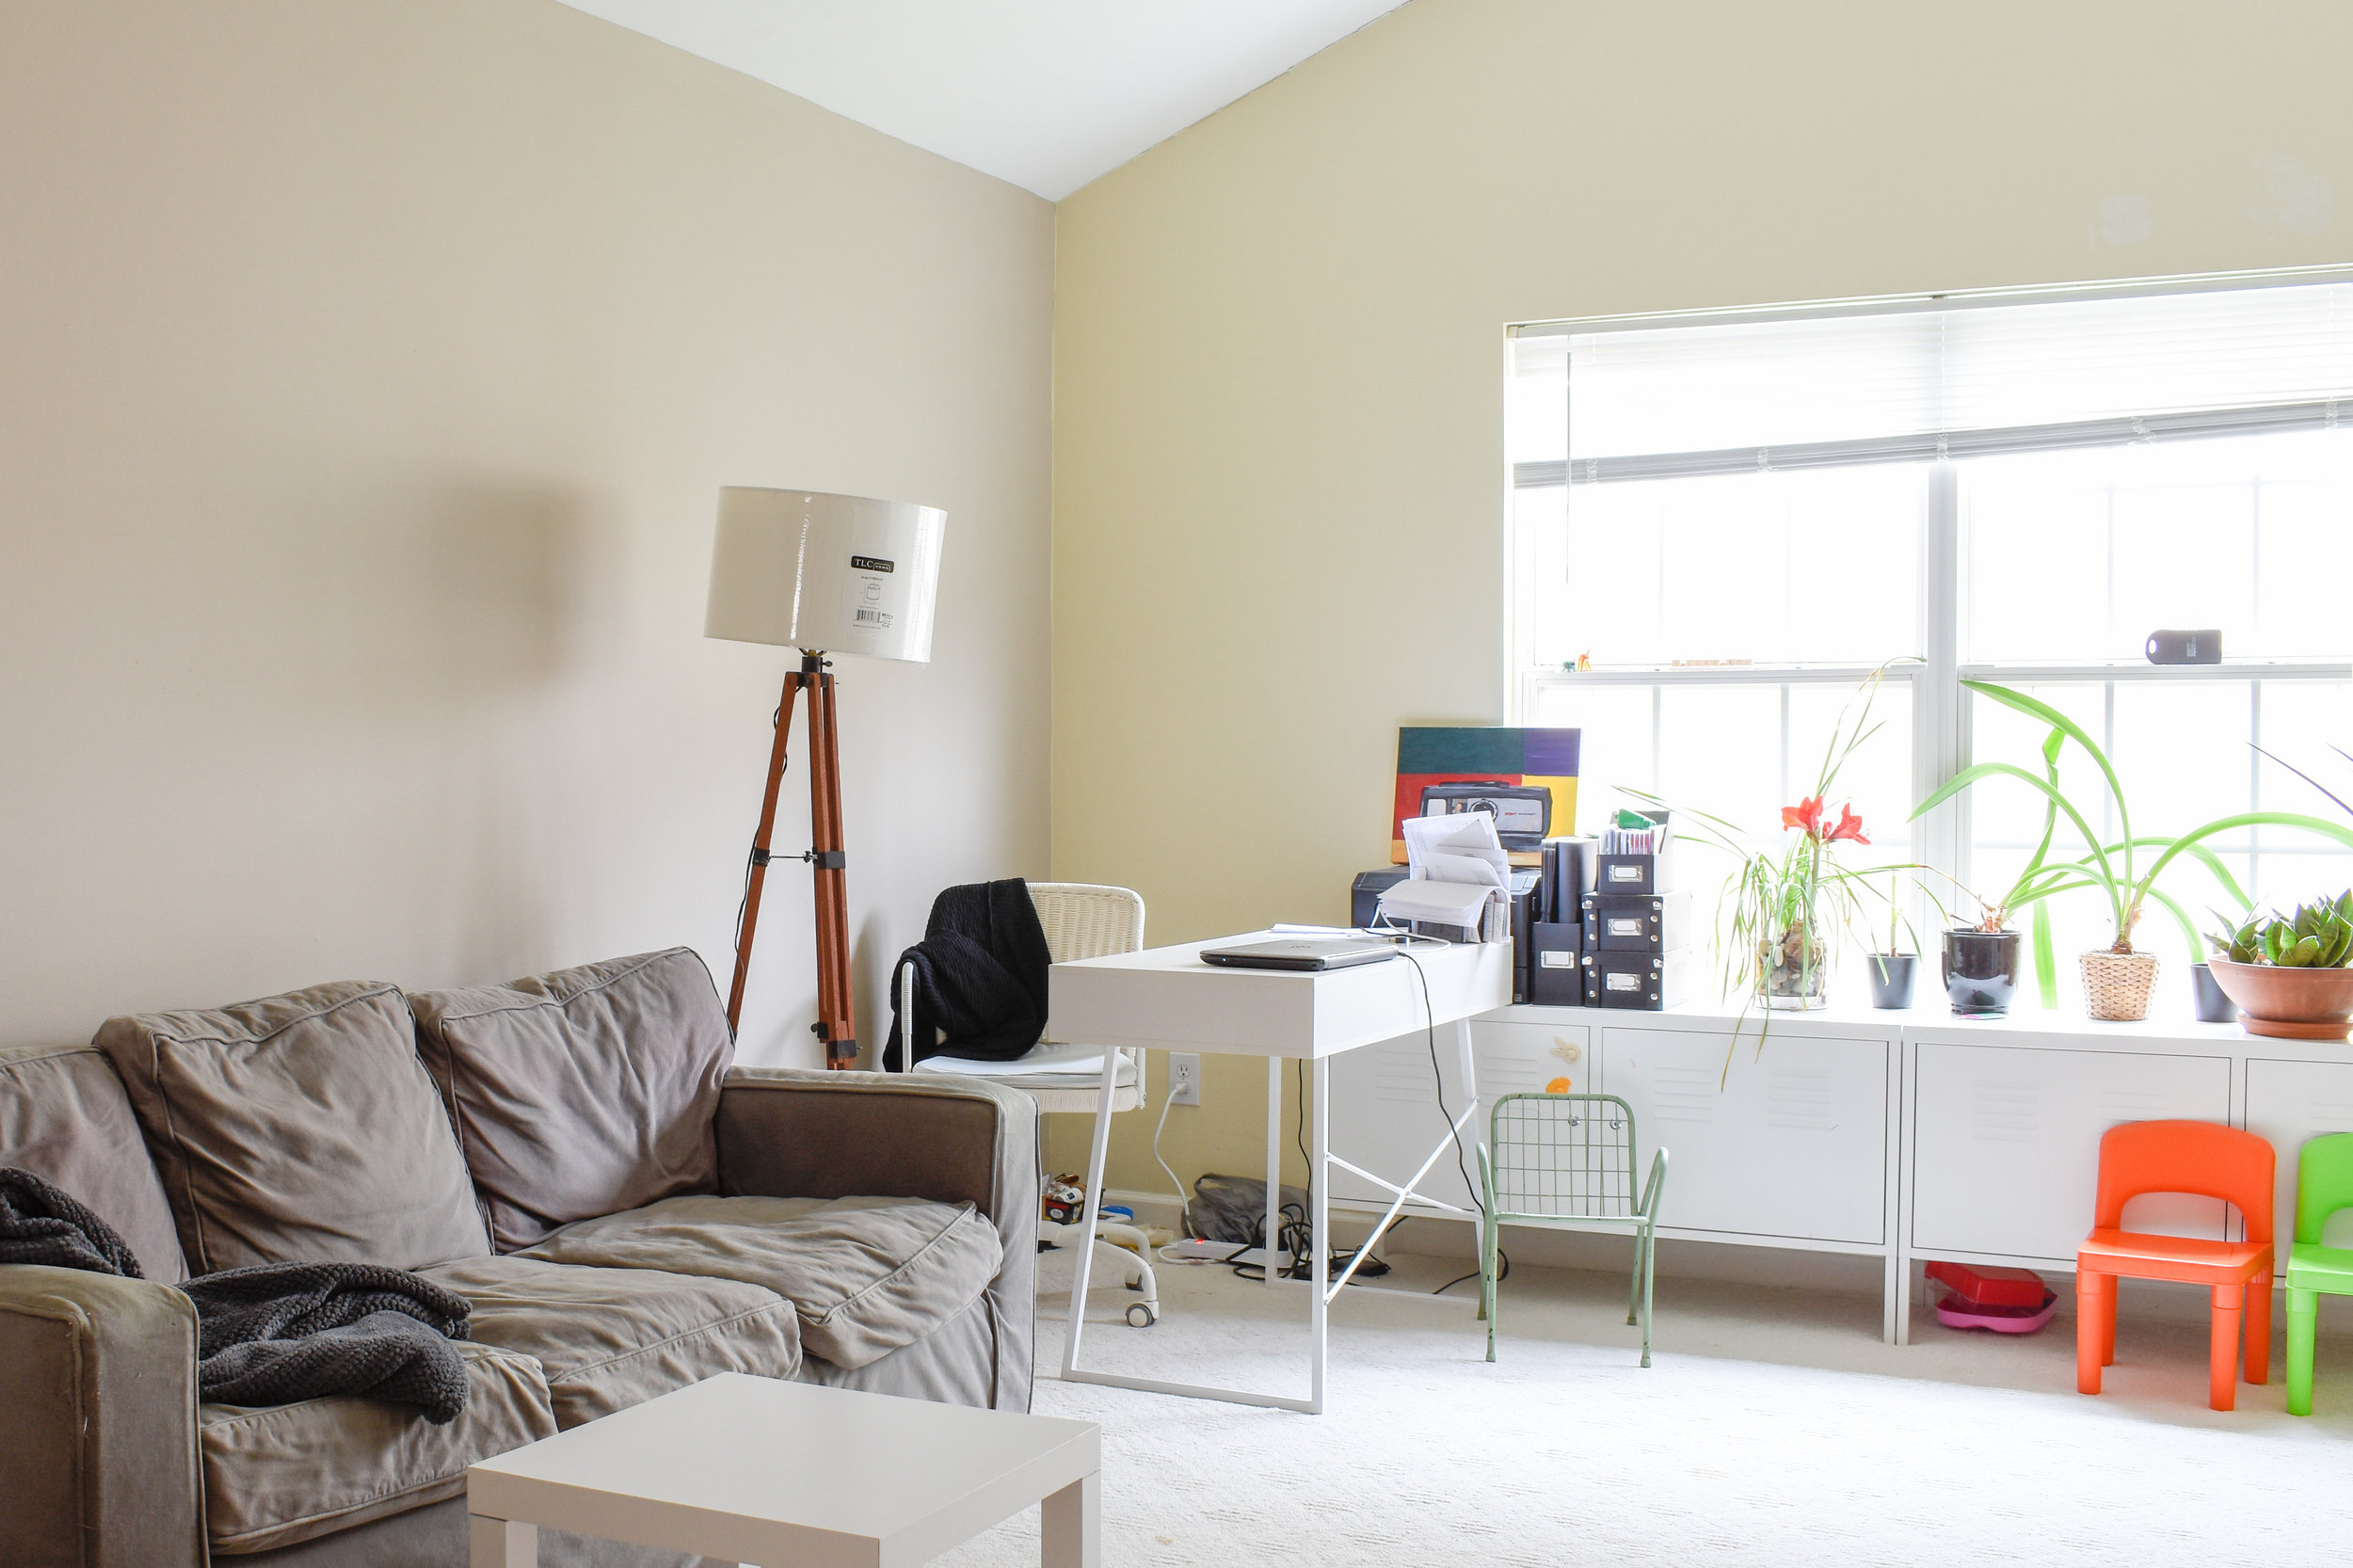 A haphazard bonus room gets a fresh facelift during this Spring's One Room Challenge.